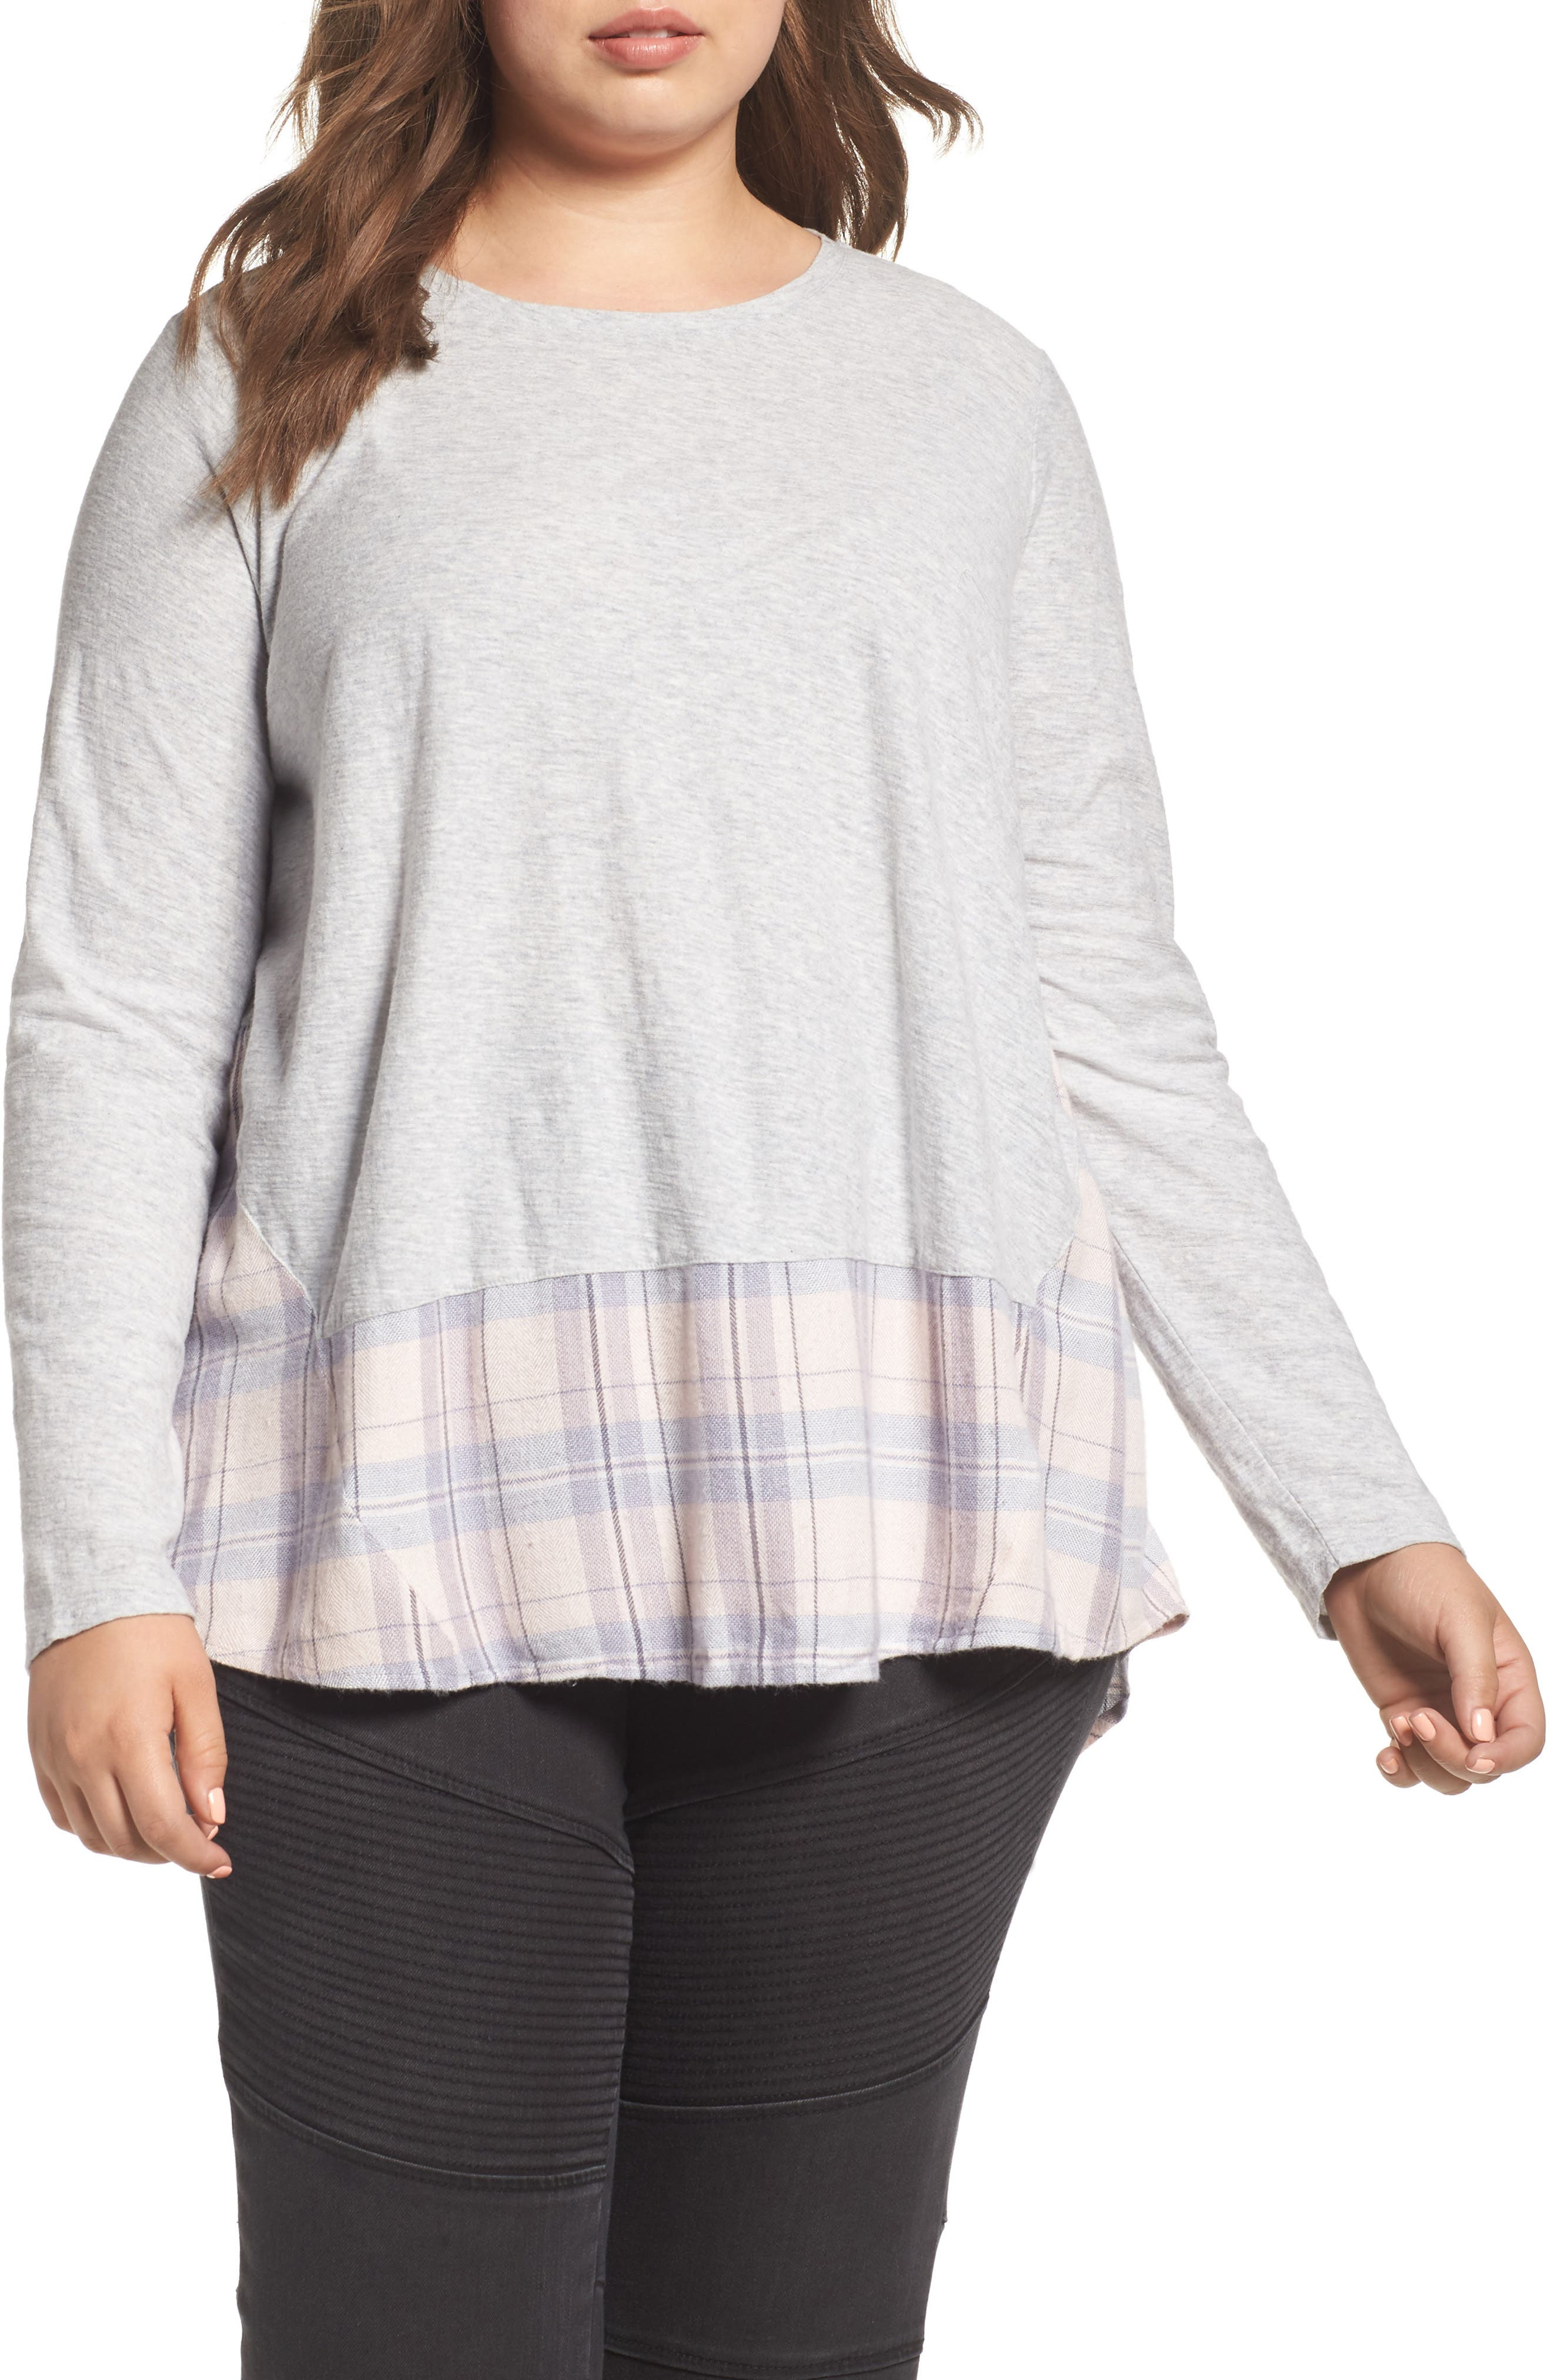 Two by Vince Camuto Mixed Media Plaid Top (Plus Size)